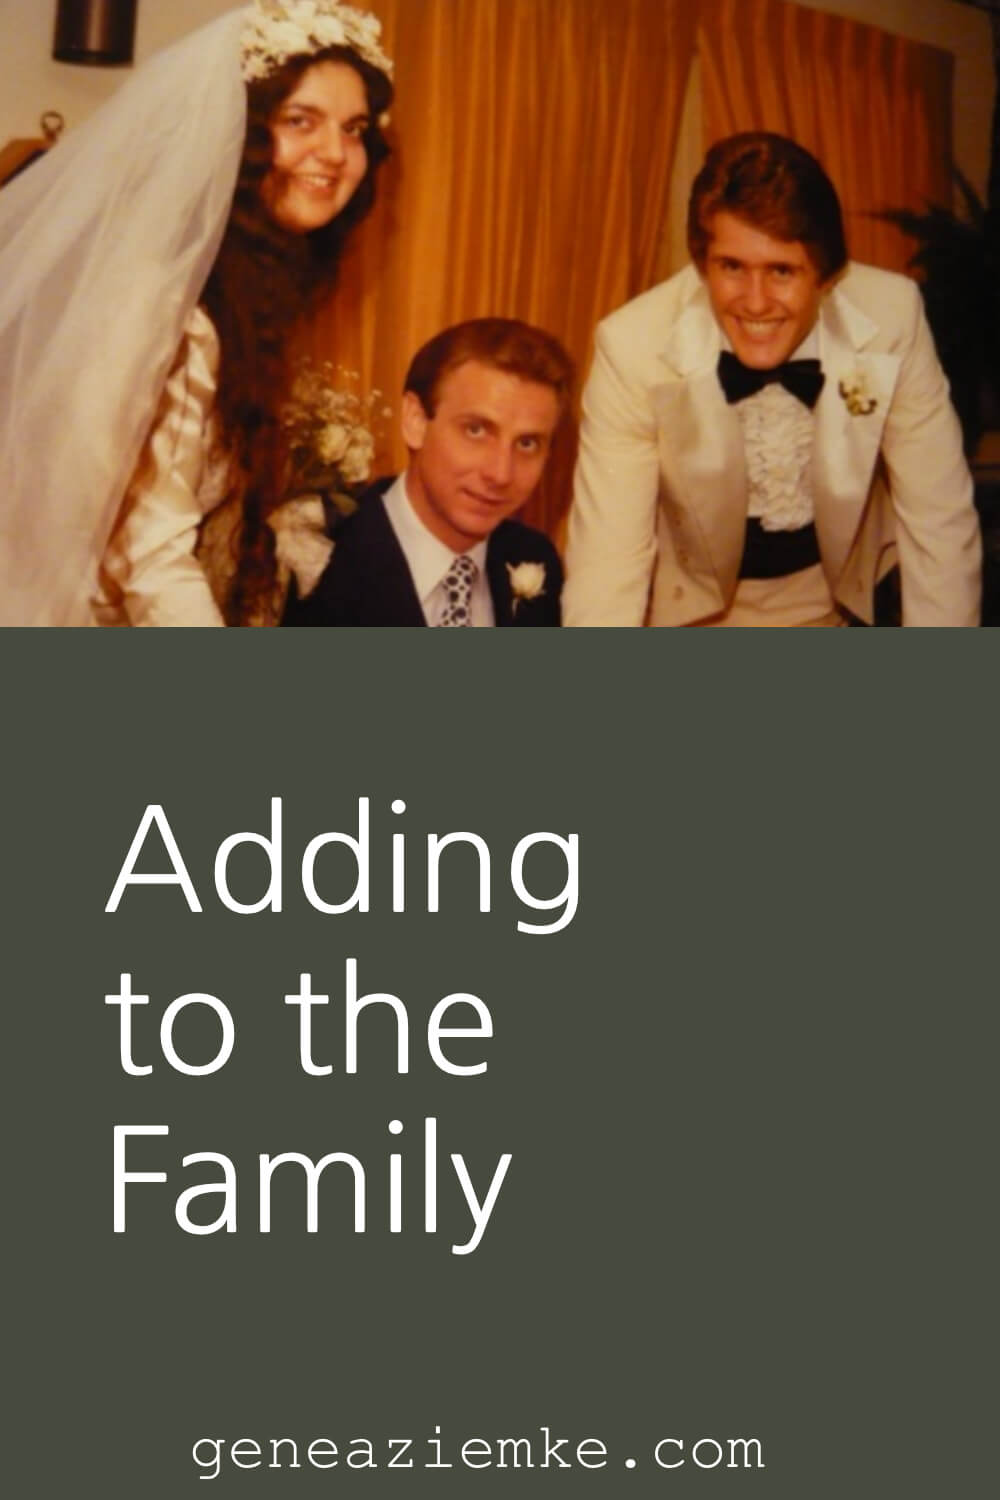 Adding To The Family - The Ziemke Story